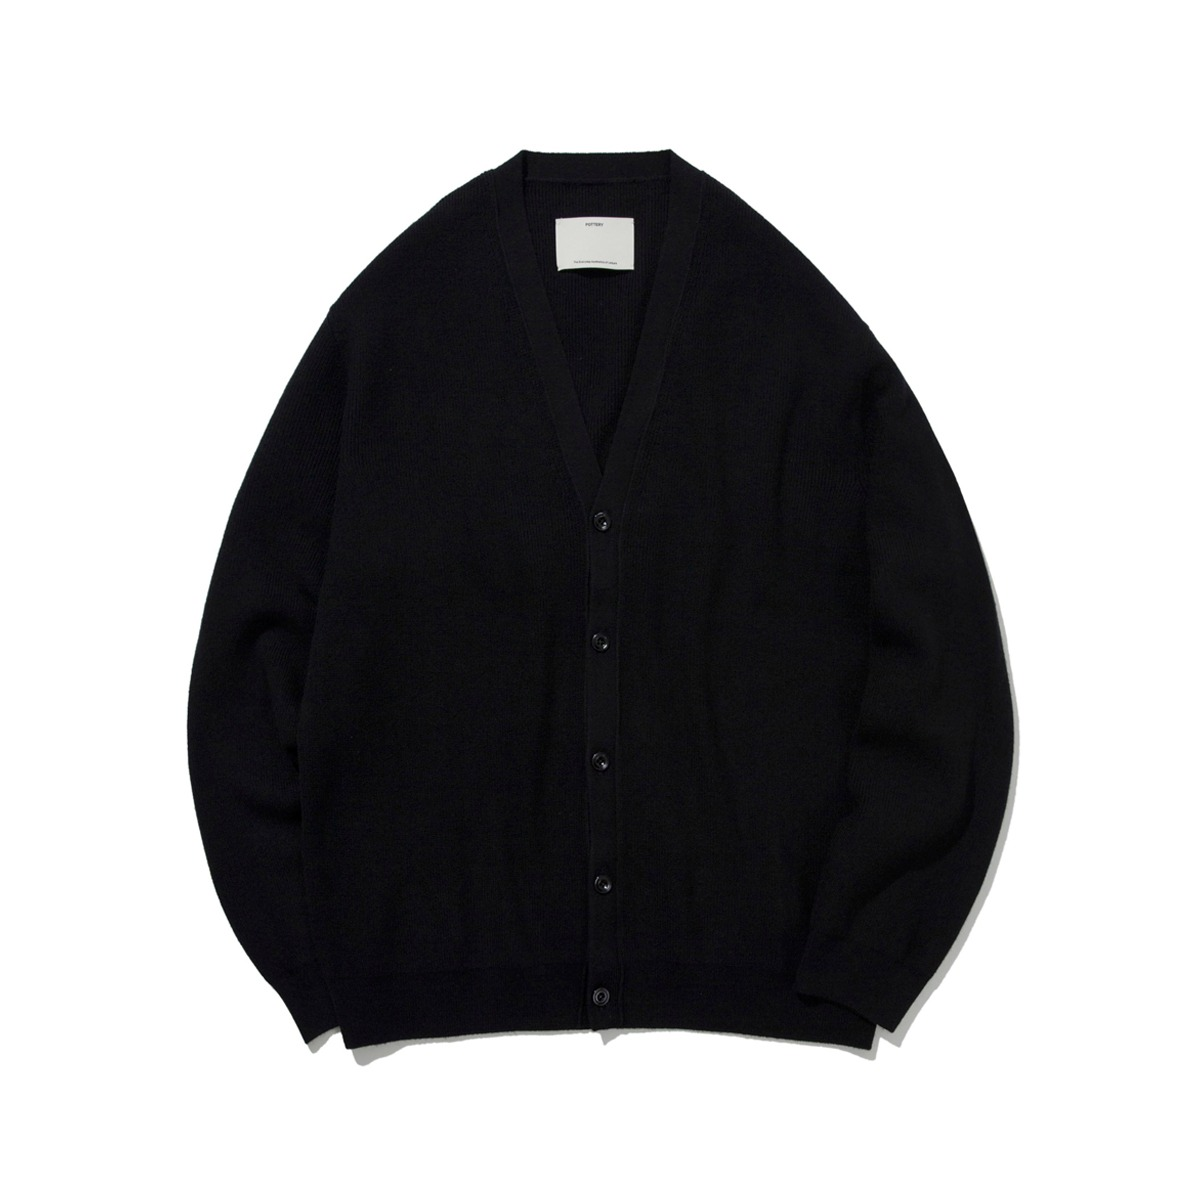 [POTTERY] COMFORT CARDIGAN 'BLACK'